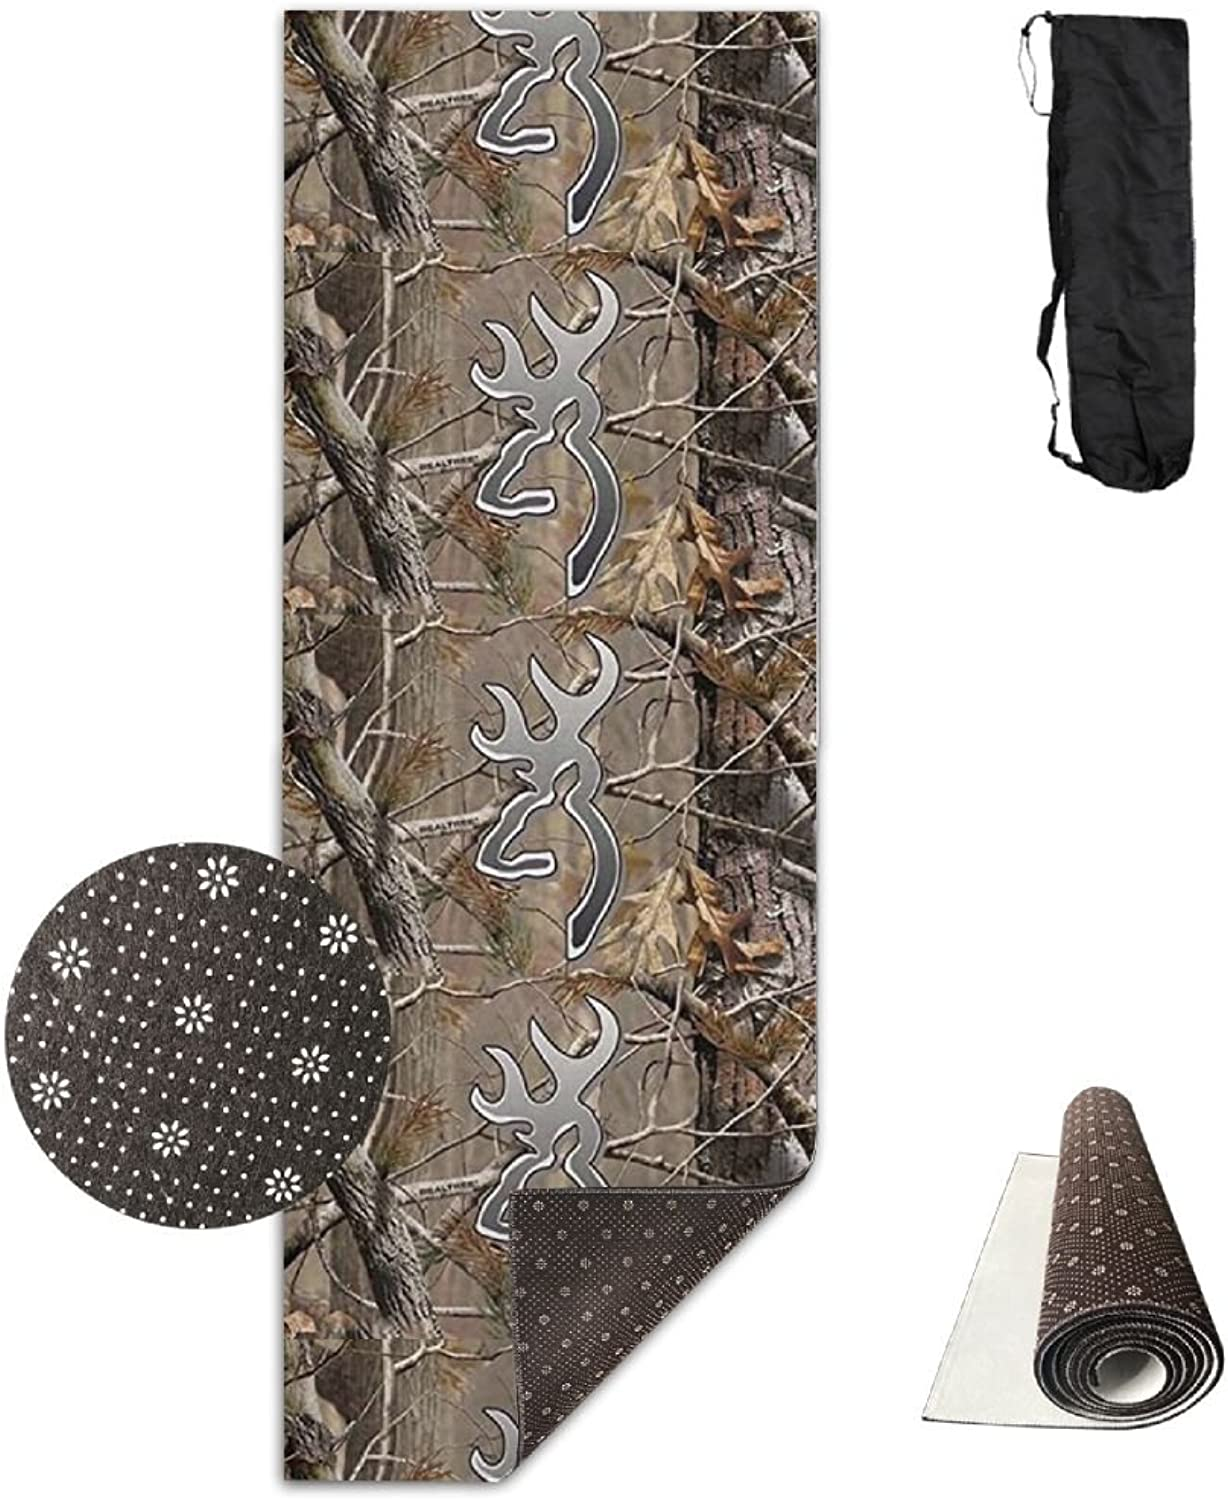 Camouflage Realtree Sporting Extra Thick Yoga Mat With No Stick Ridge